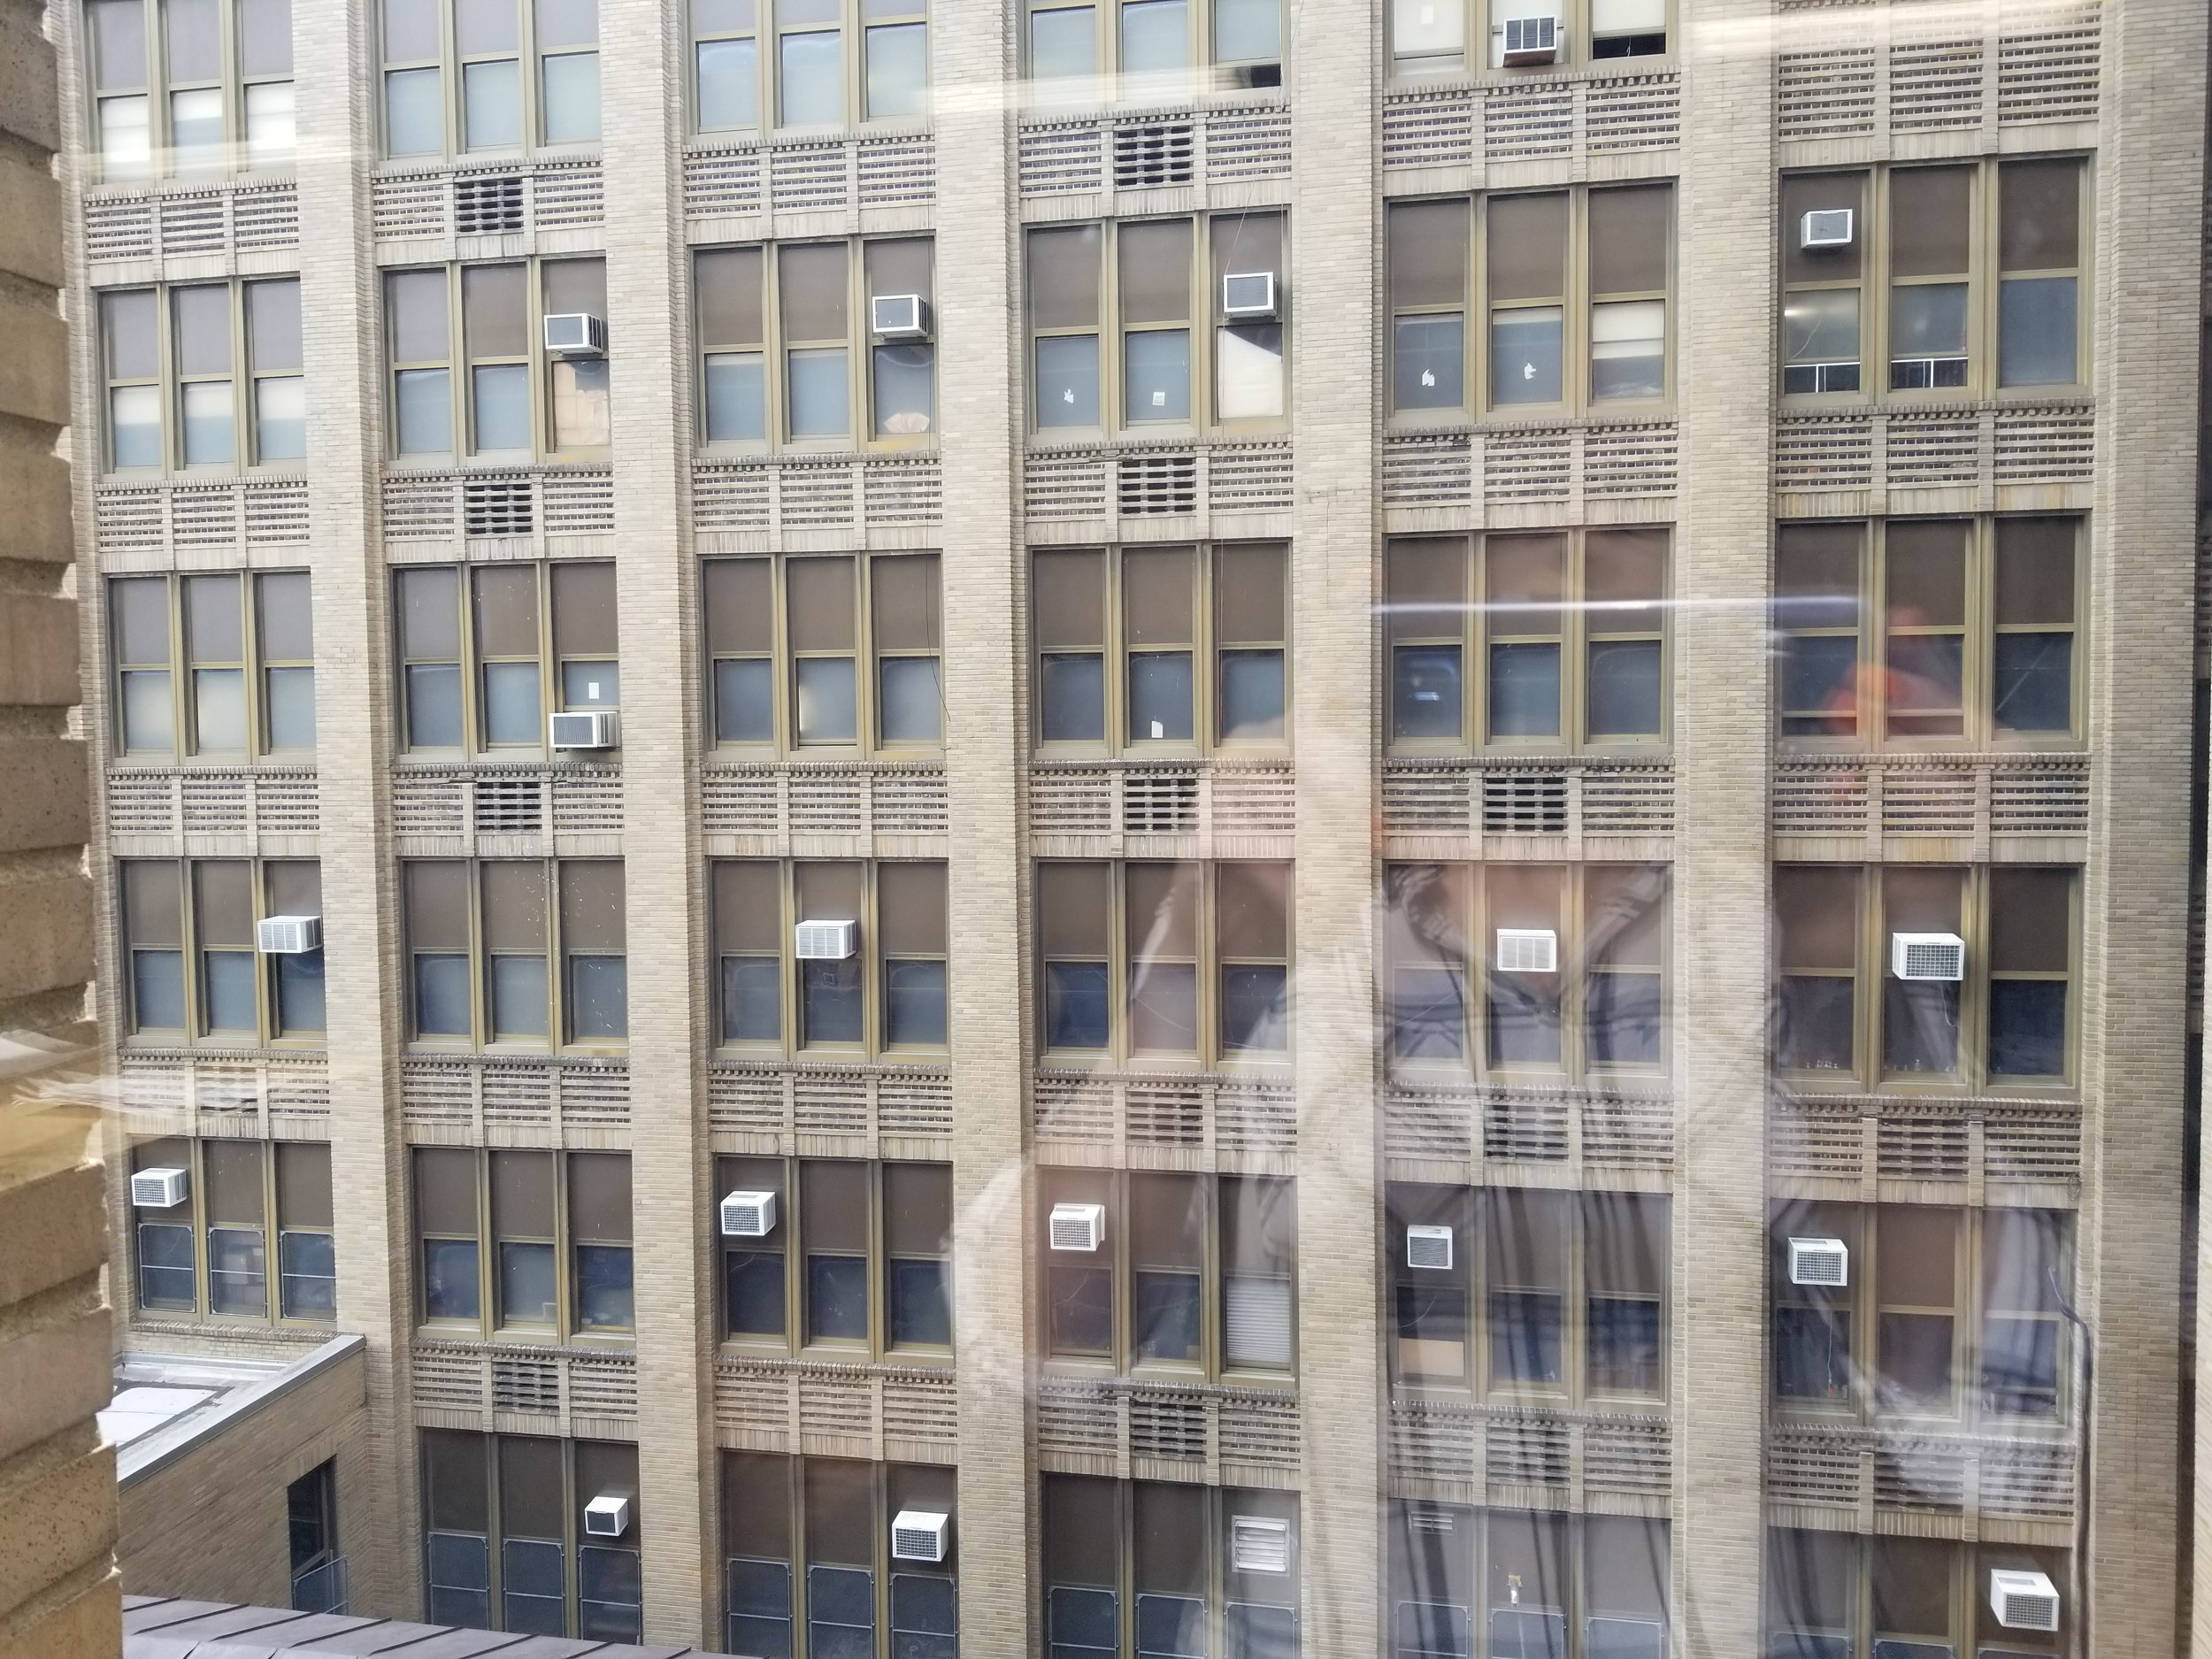 The building has a great rhythm of windows and brick pilasters (and air conditioning units!). You can also see Sara's fun self-portrait reflected in the glass.